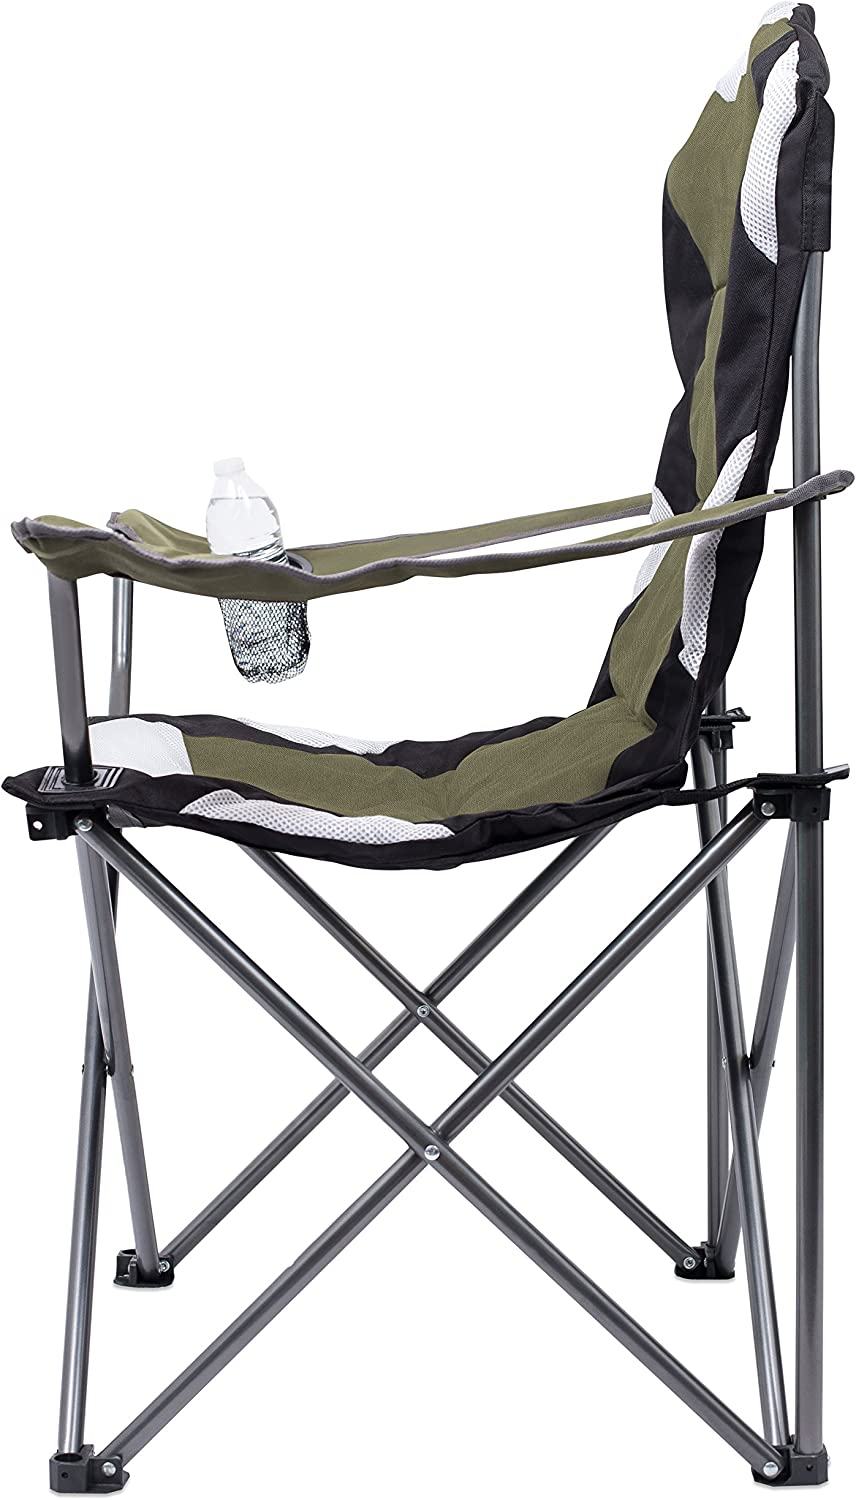 Outdoor Comfortable Sports Quad Carry Bag Cup Holder Beach Internets Best Padded Camping Folding Chair